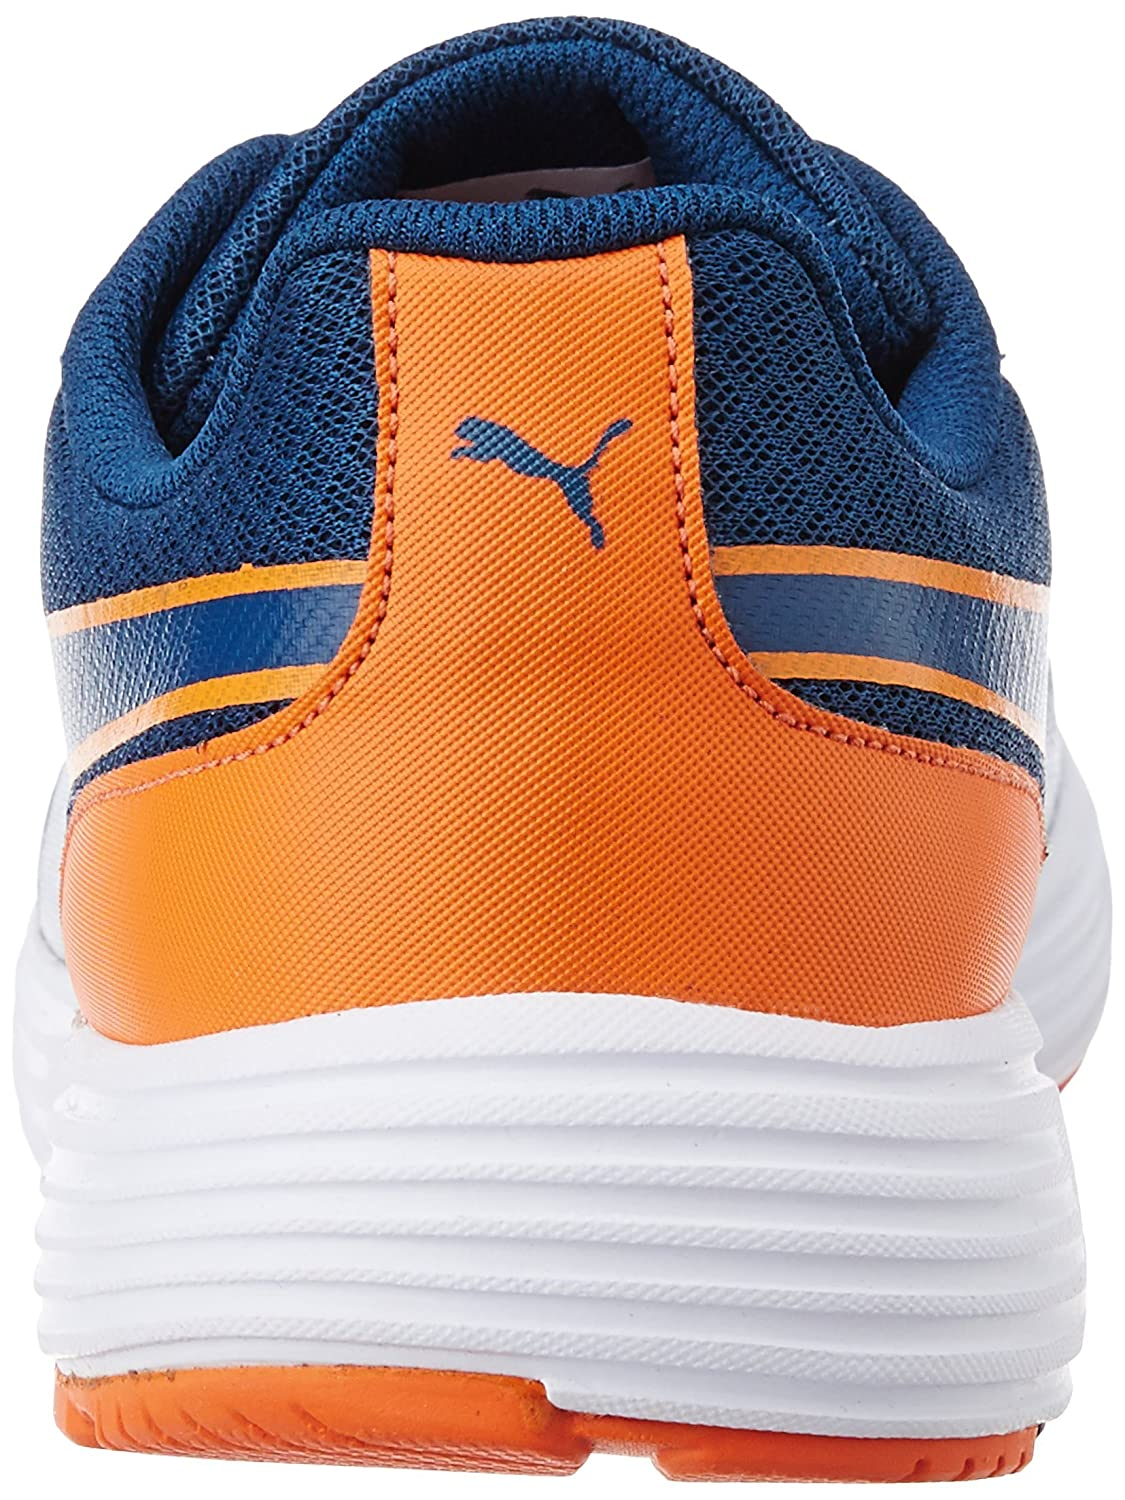 fbf90d1a4317c2 Puma Men s Future Runner DP Poseidon and Orange Mesh Running Shoes -  10UK India (44.5EU)  Buy Online at Low Prices in India - Amazon.in